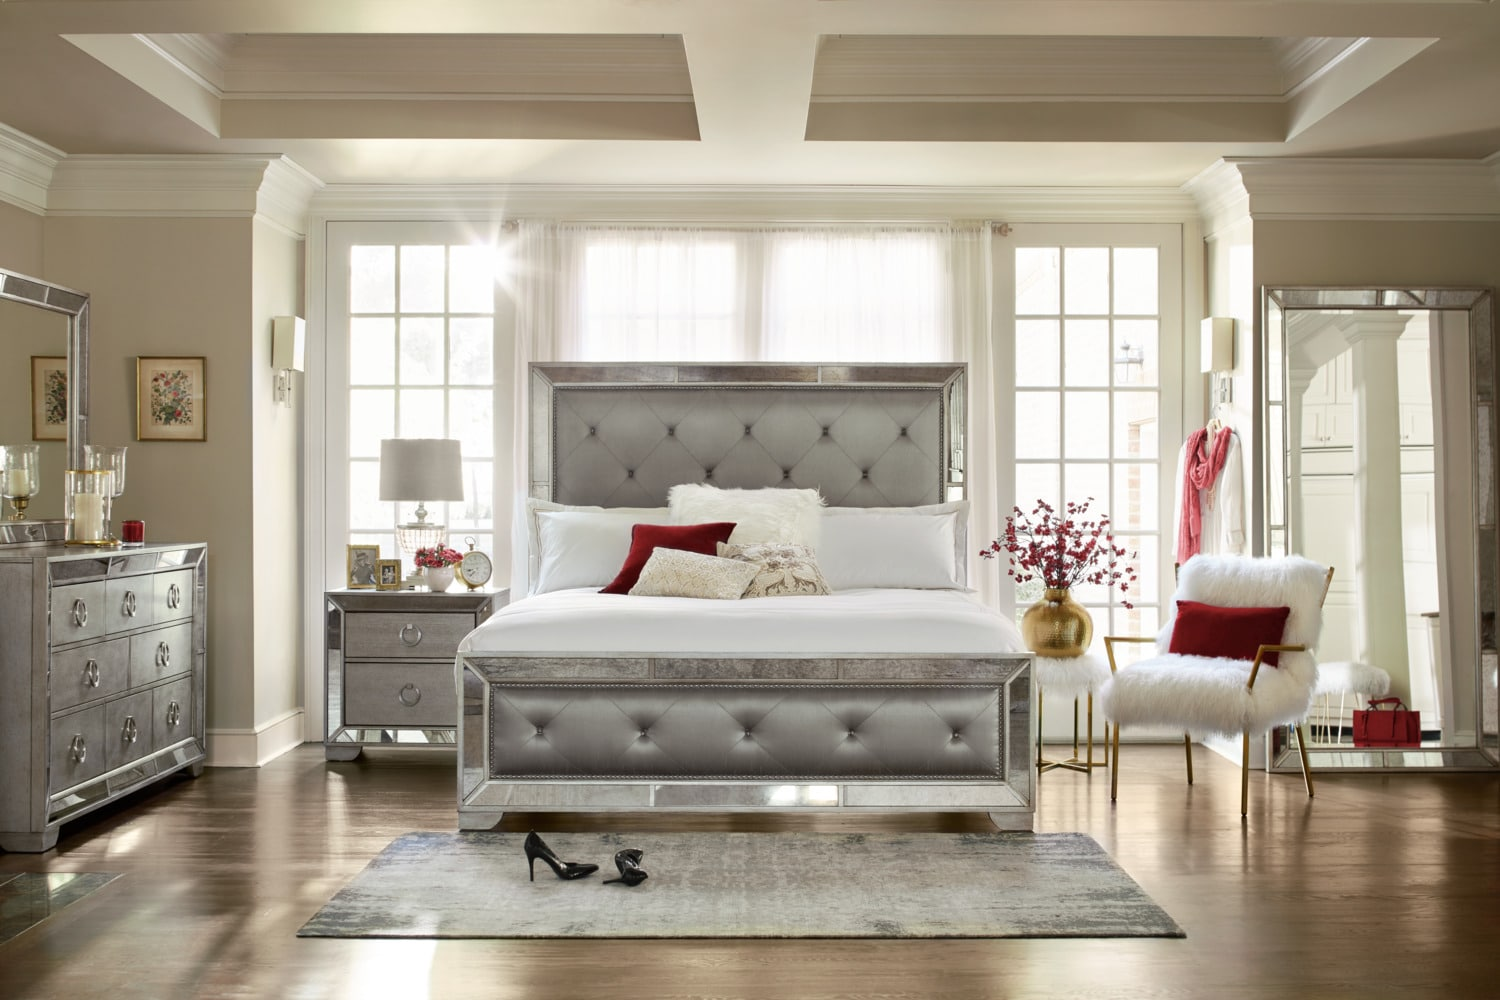 bedroom floor mirror. Click to change image  Angelina Floor Mirror Metallic Value City Furniture and Mattresses